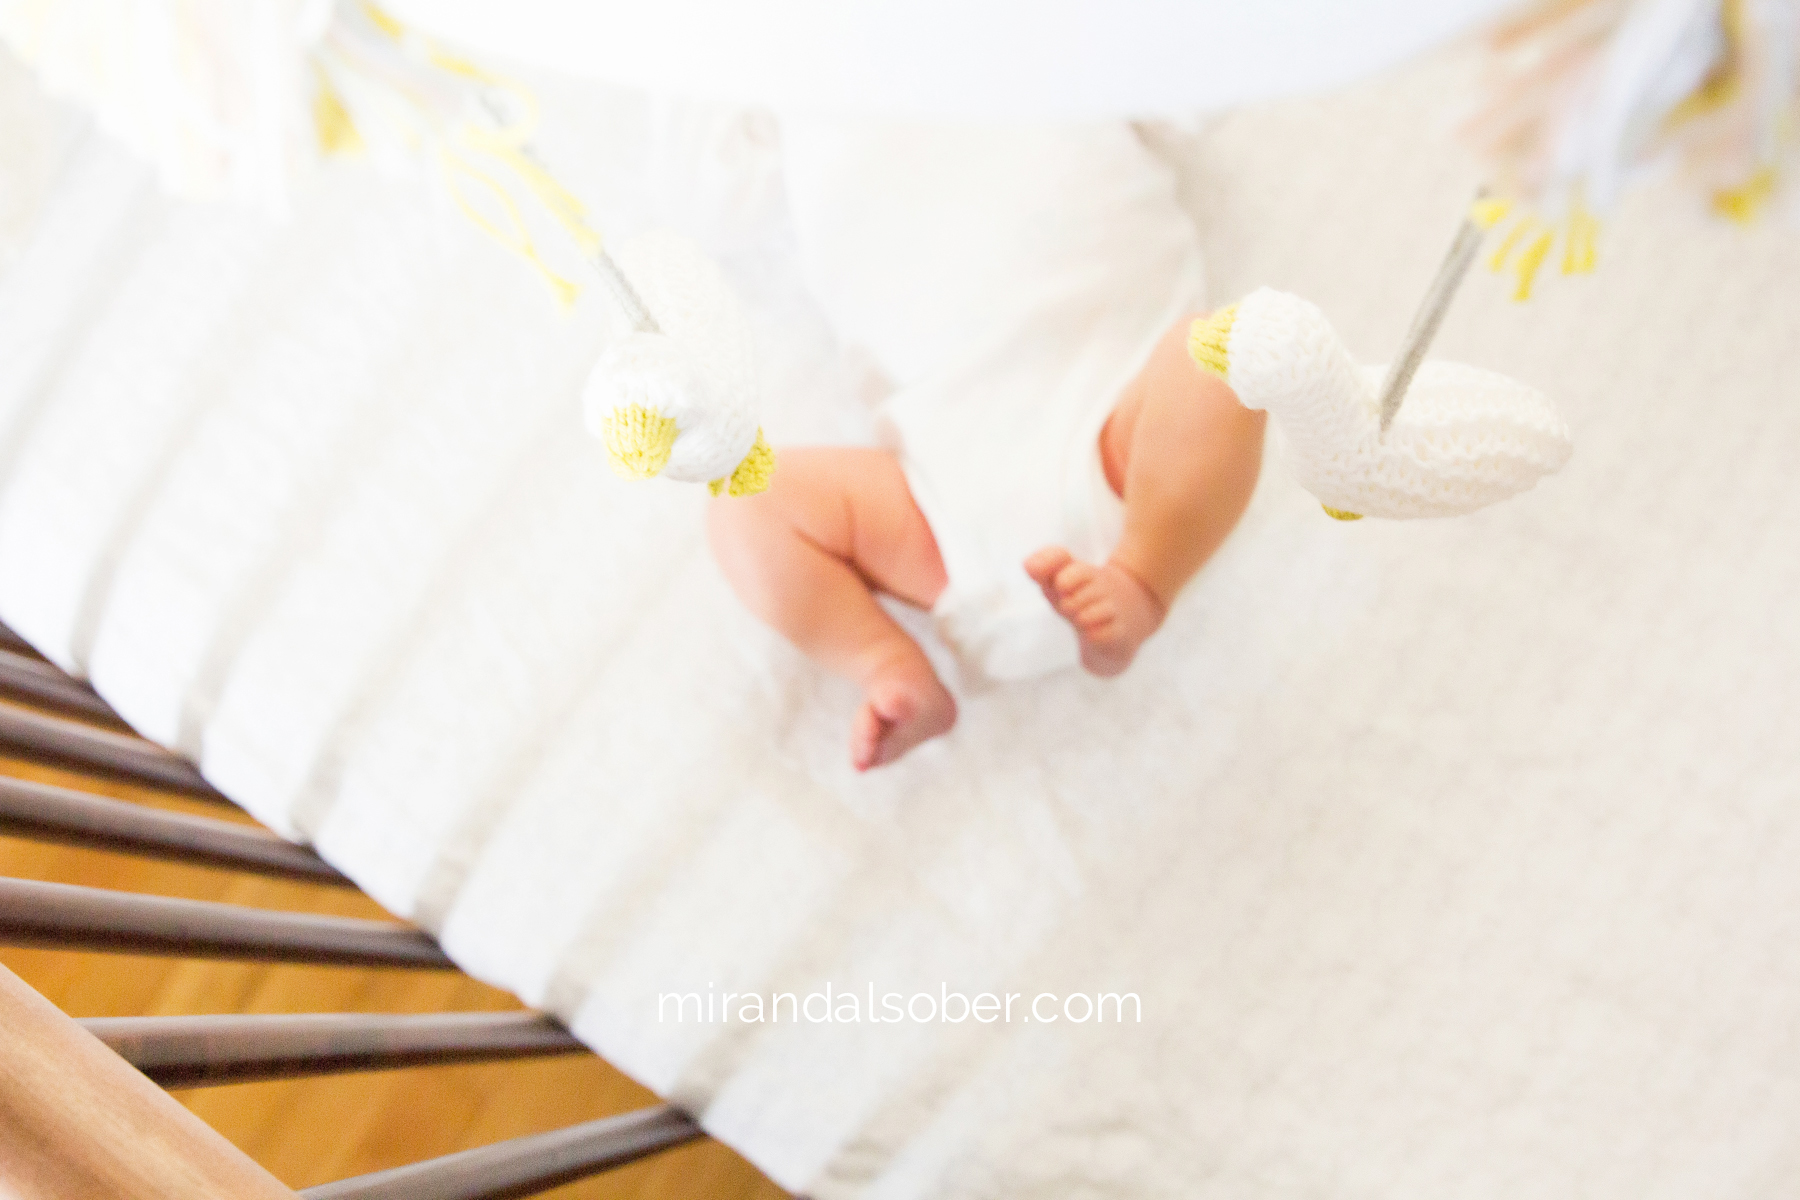 Fort Collins photography websites, Miranda L. Sober Photography, baby nursery ideas